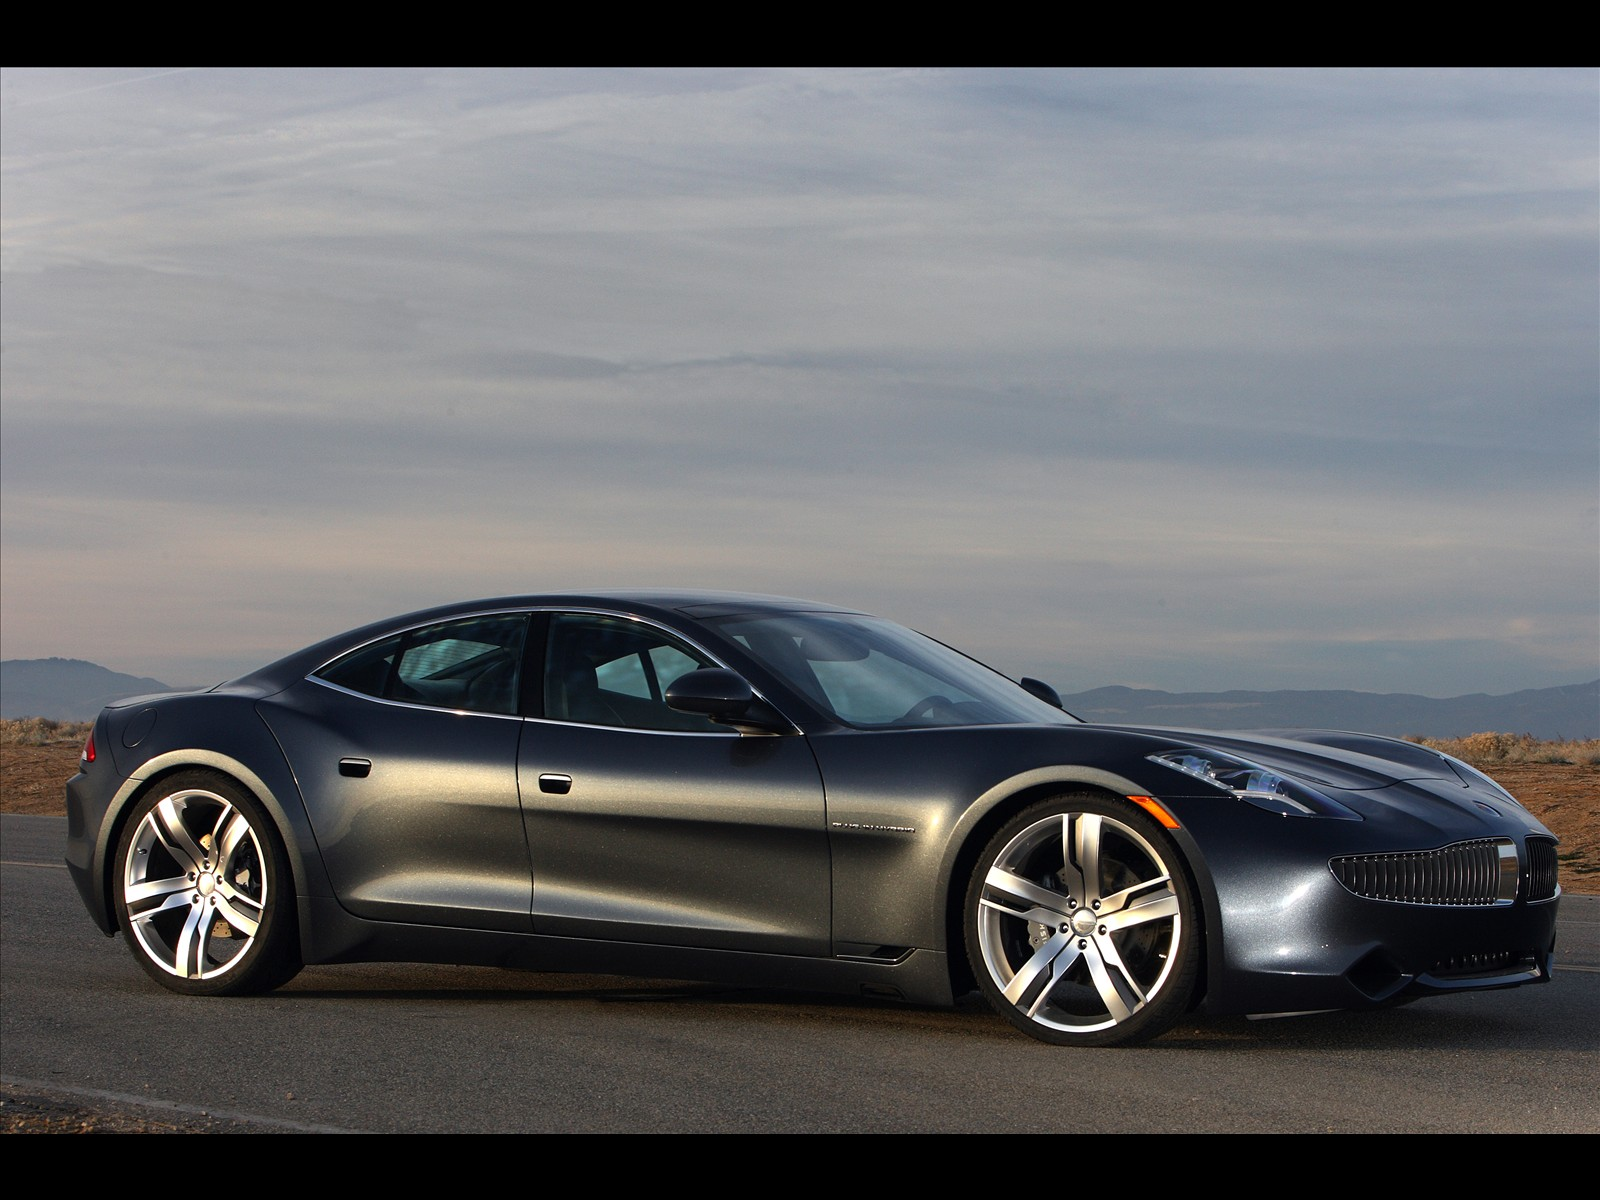 ultimate machines 2010 fisker karma. Black Bedroom Furniture Sets. Home Design Ideas